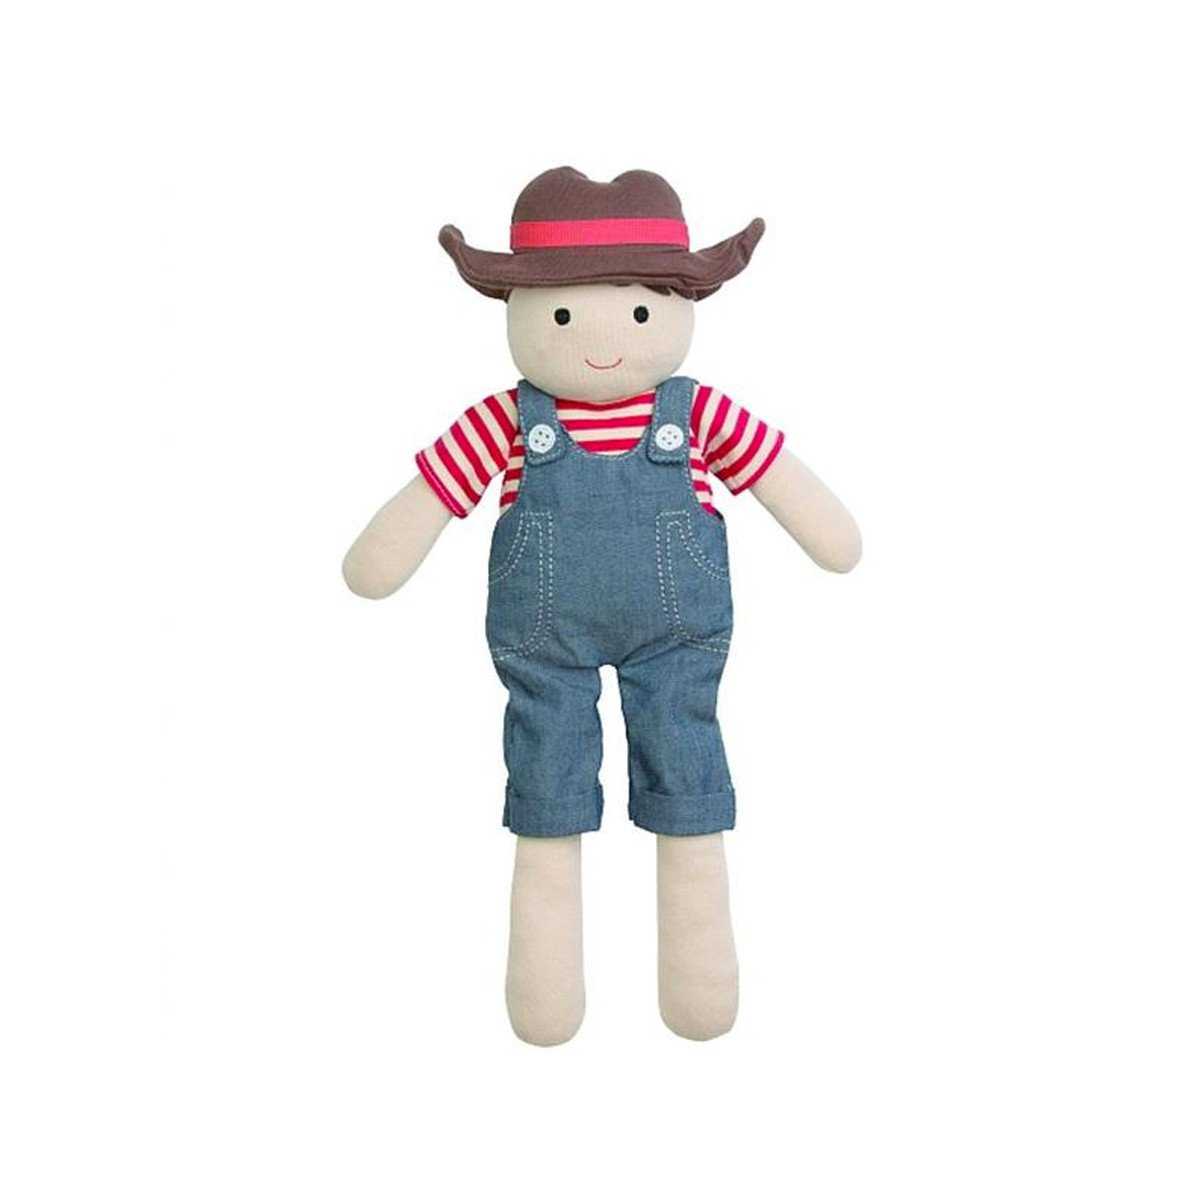 Apple Park Organic Plush Toy Apple Park Organic Baby Gifts Barnyard Billie at Little Earth Nest Eco Shop